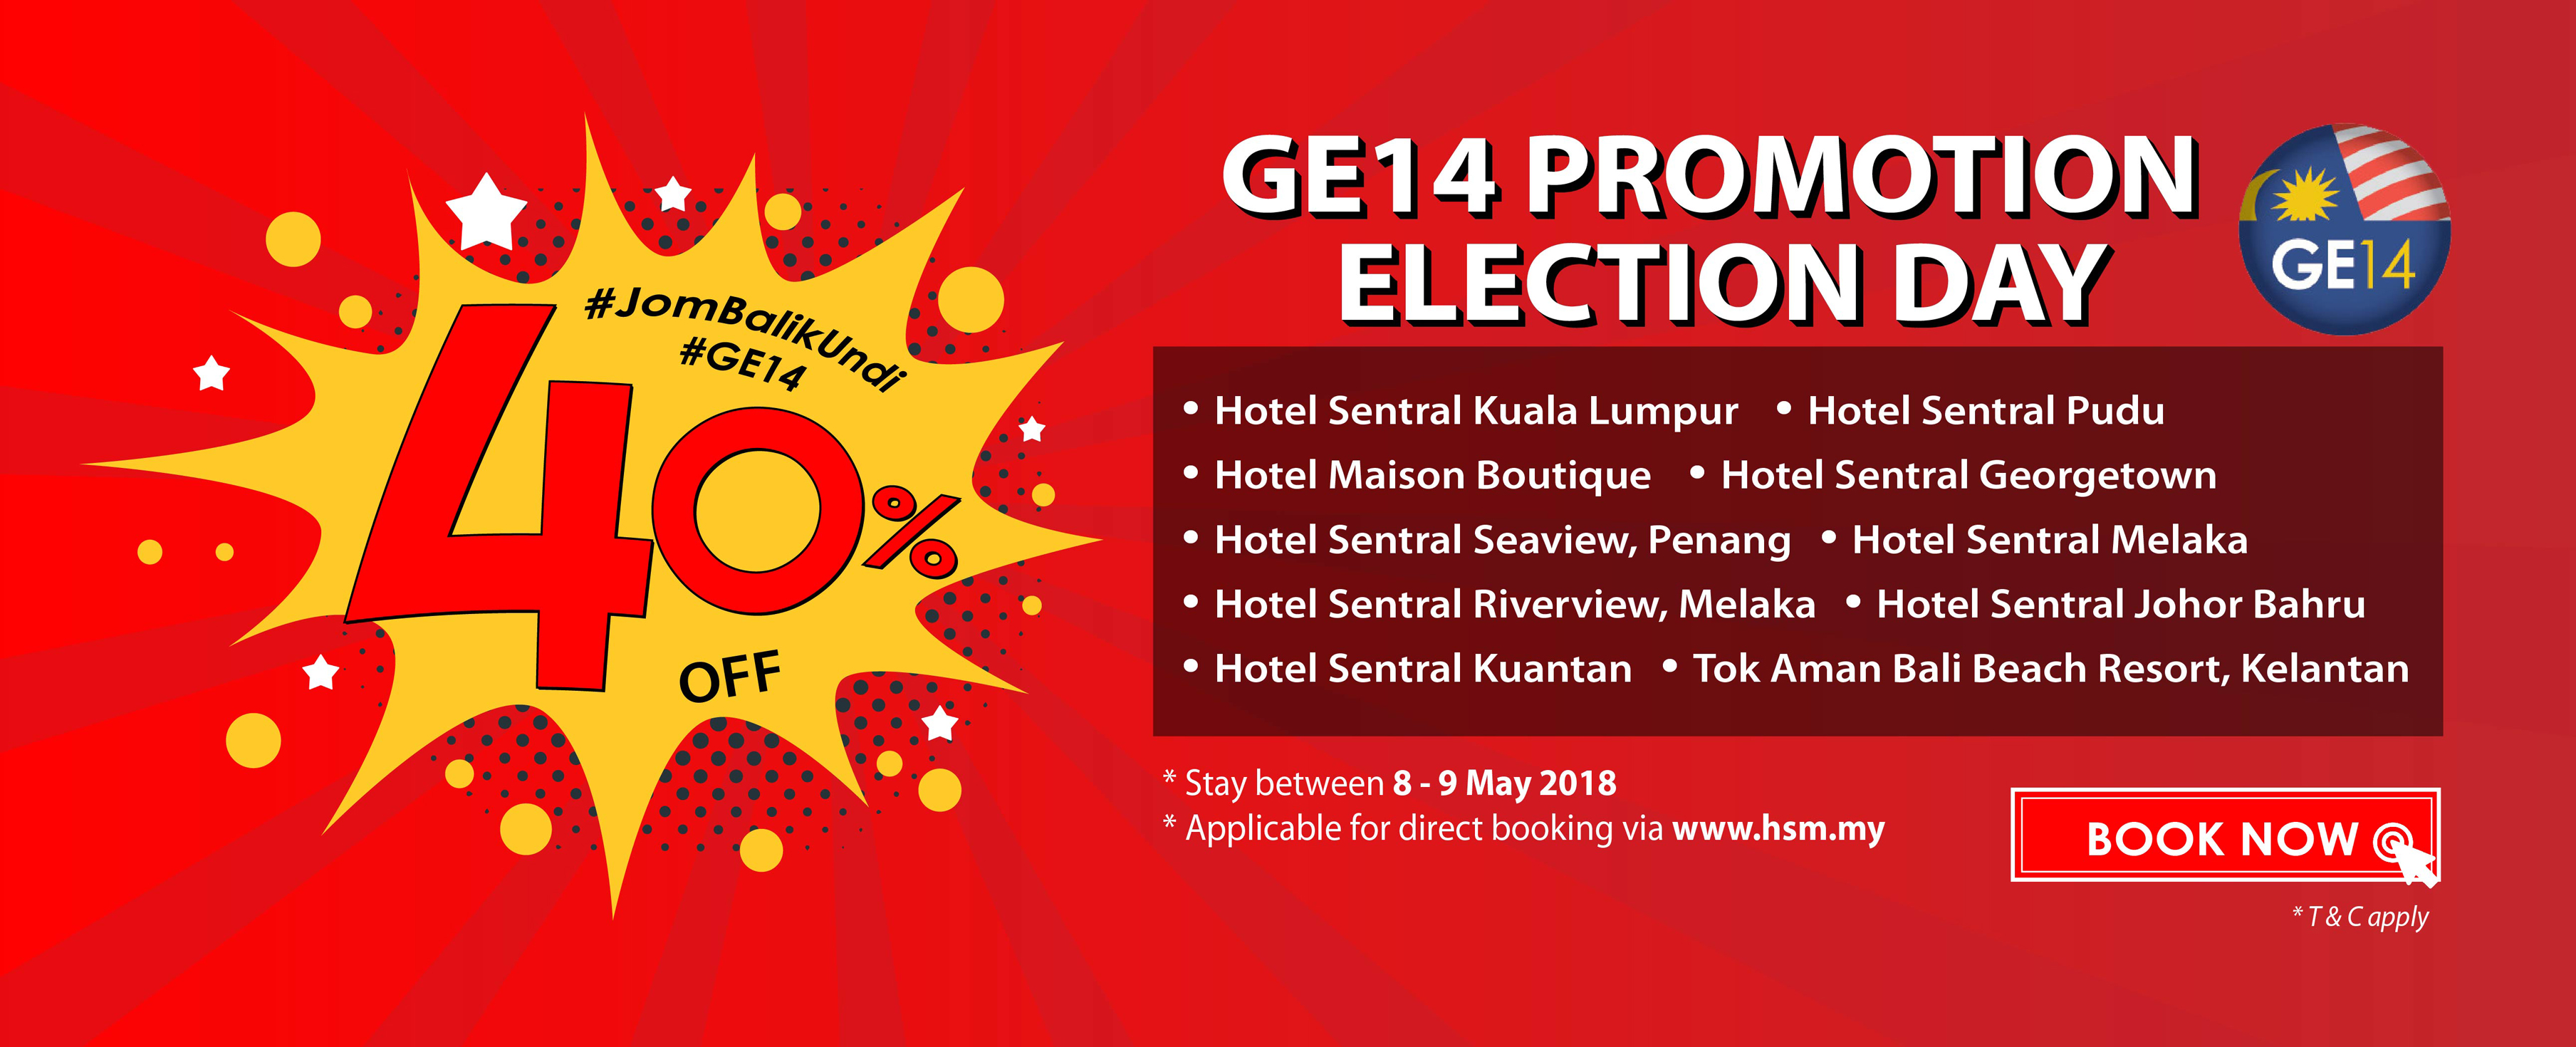 Hotel Sentral GE14 Promotion Election Day